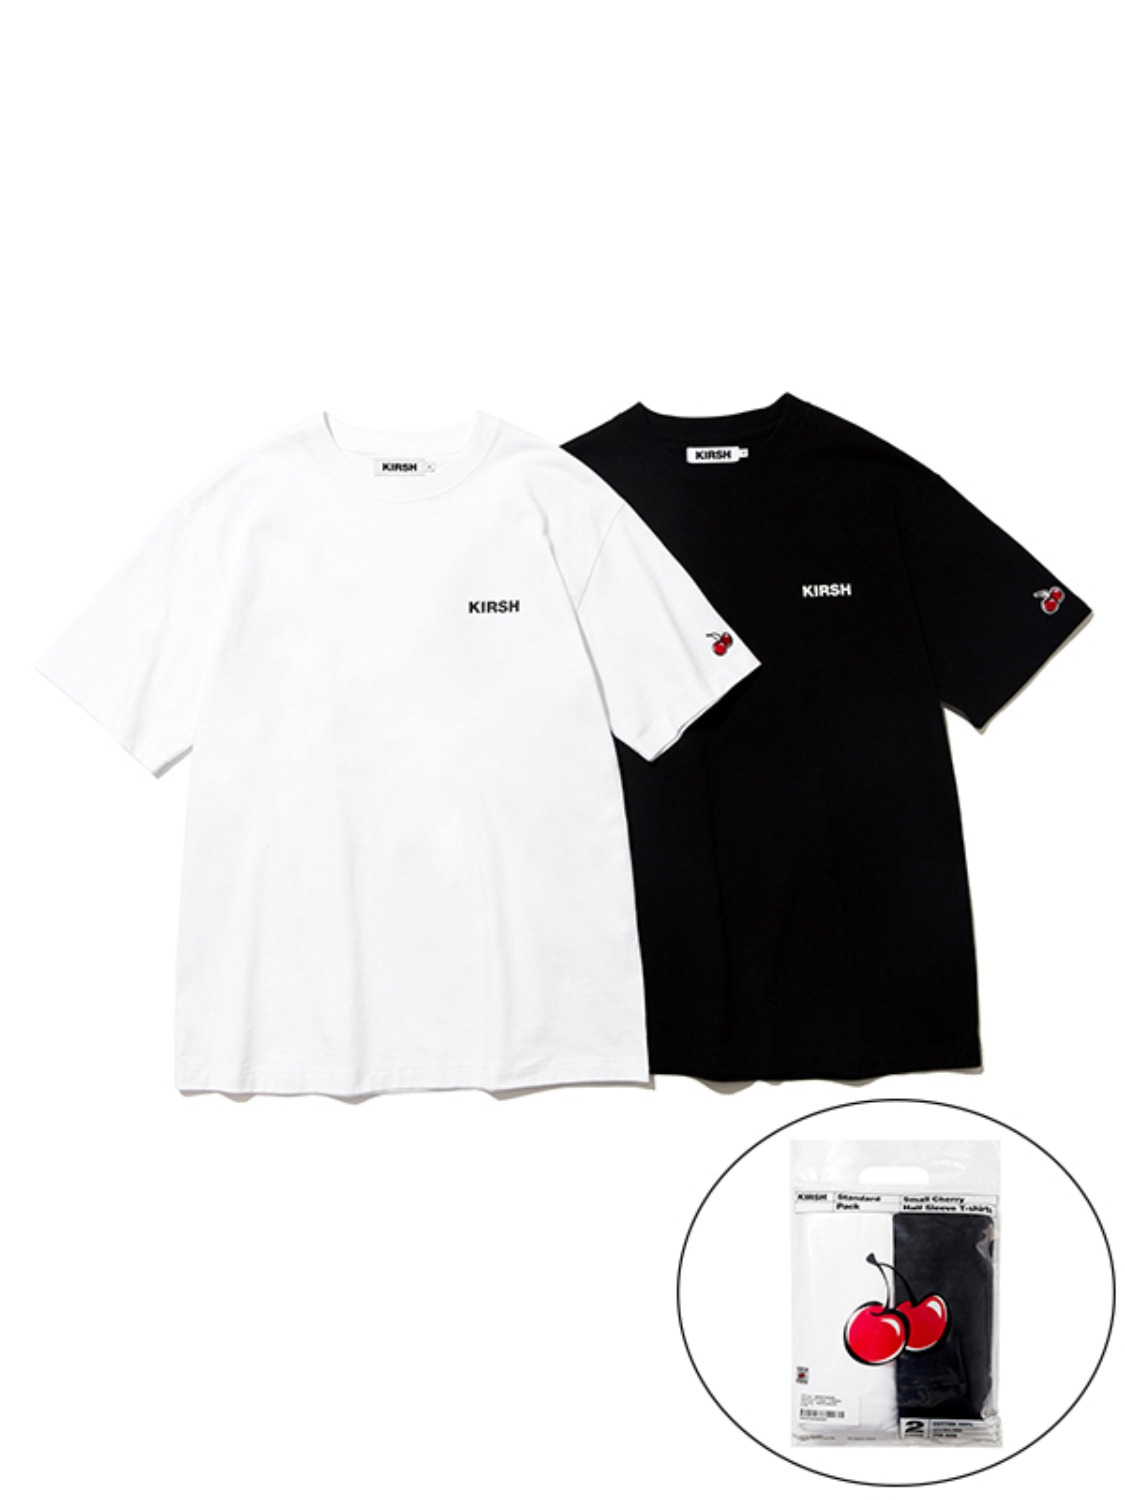 (4월 30일 예약발송)LOGO STANDARD T-SHRIT 2PACK KS [WHITE, BLACK]